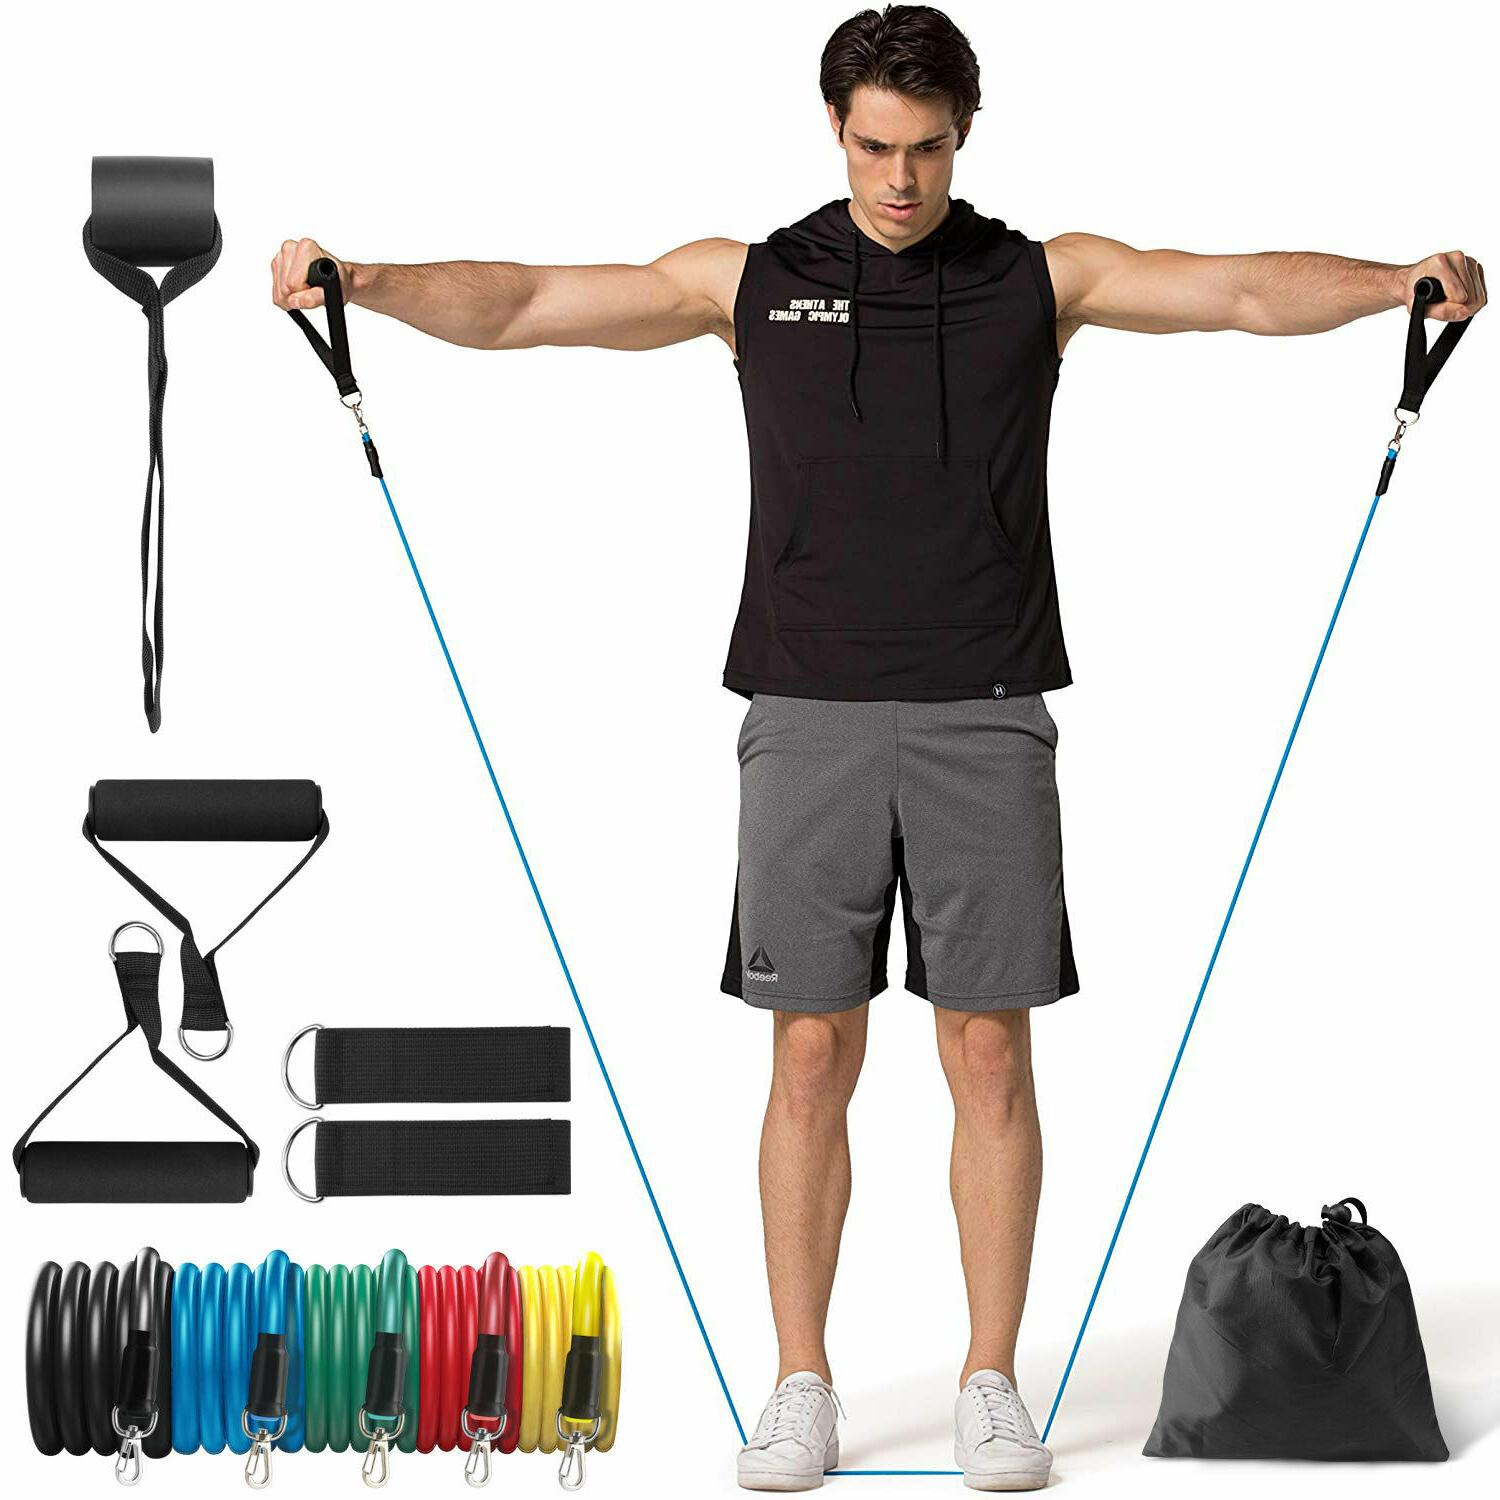 2020 - Resistance Bands Ankle At Home Workout